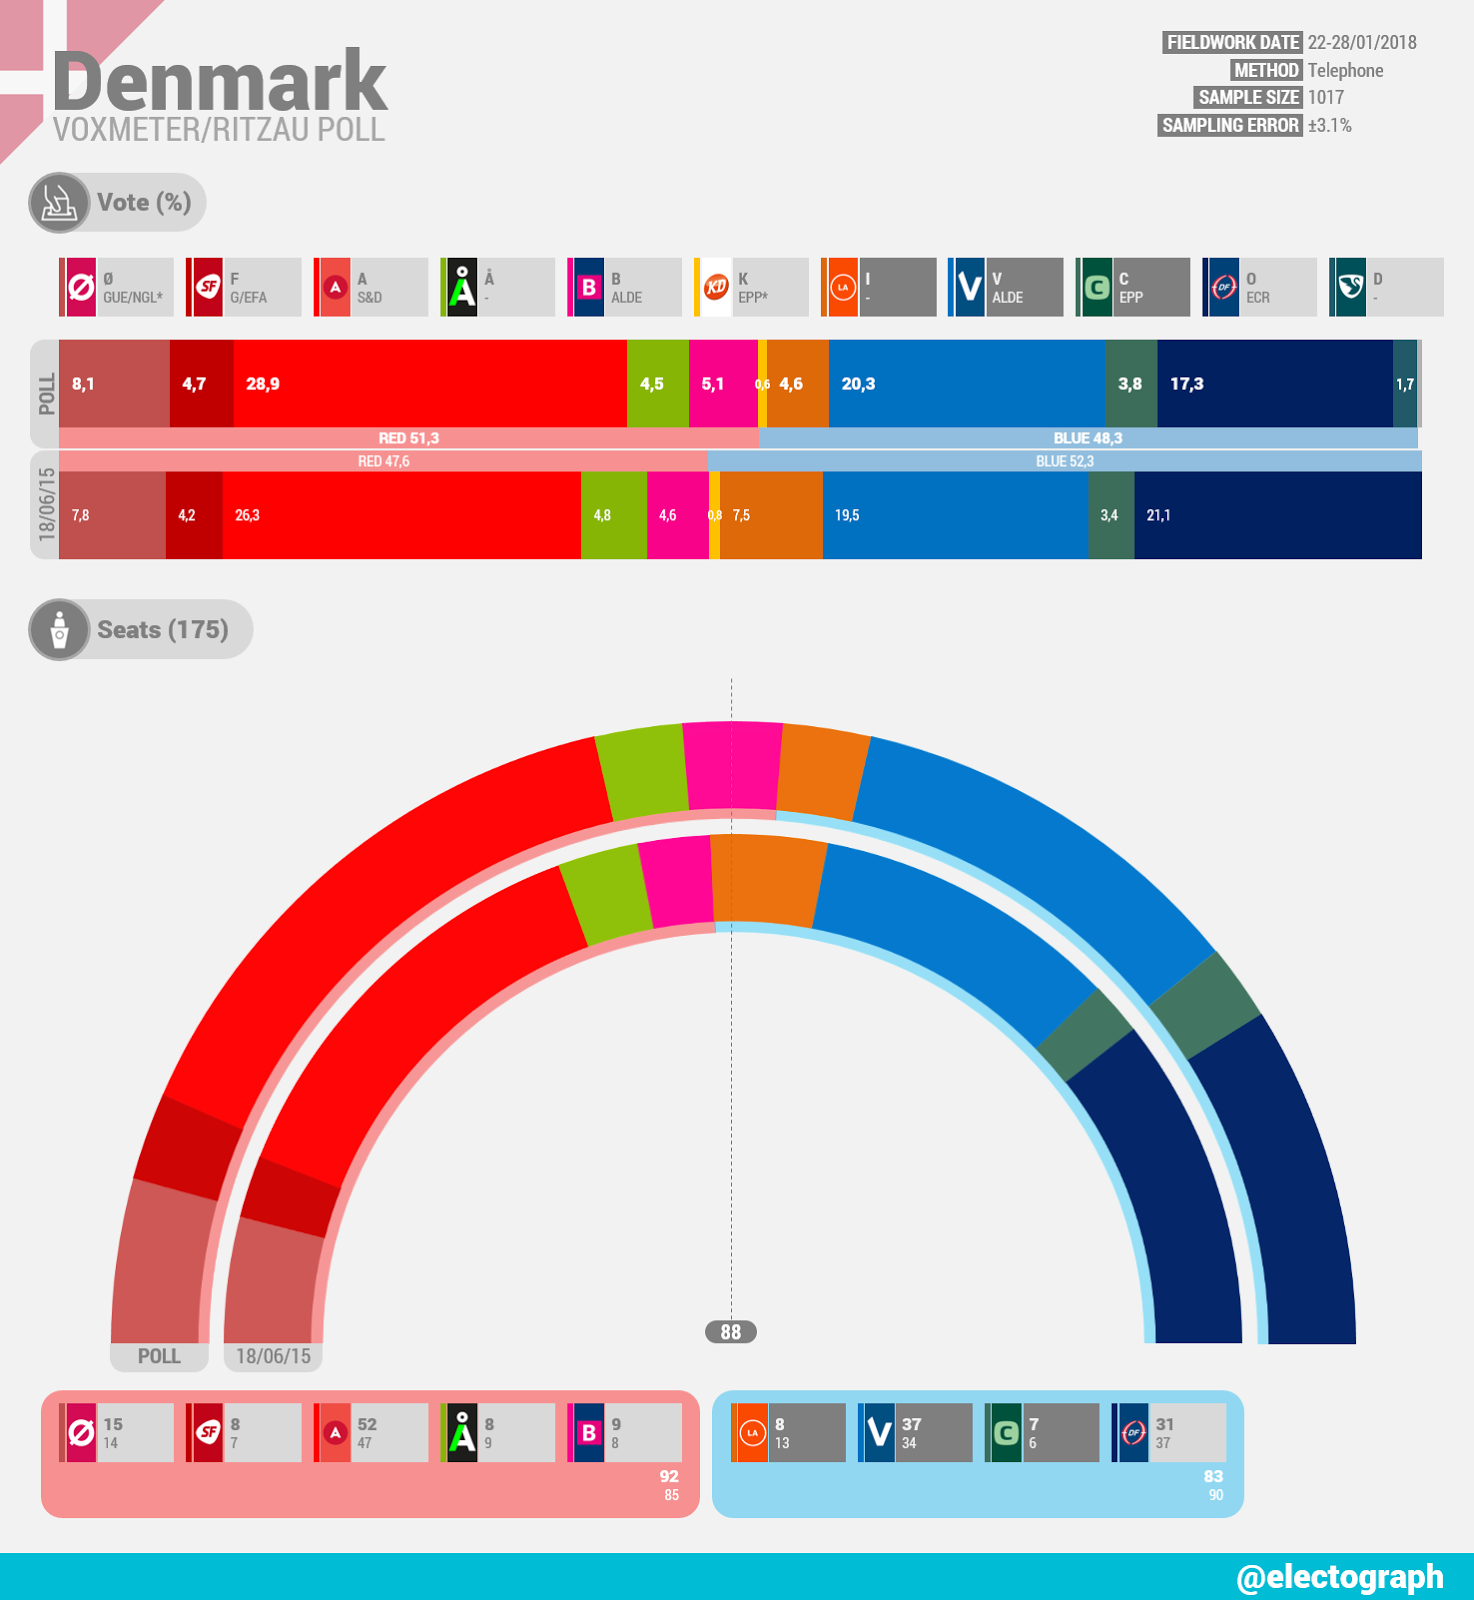 DENMARK Voxmeter poll chart for Ritzau, January 2018